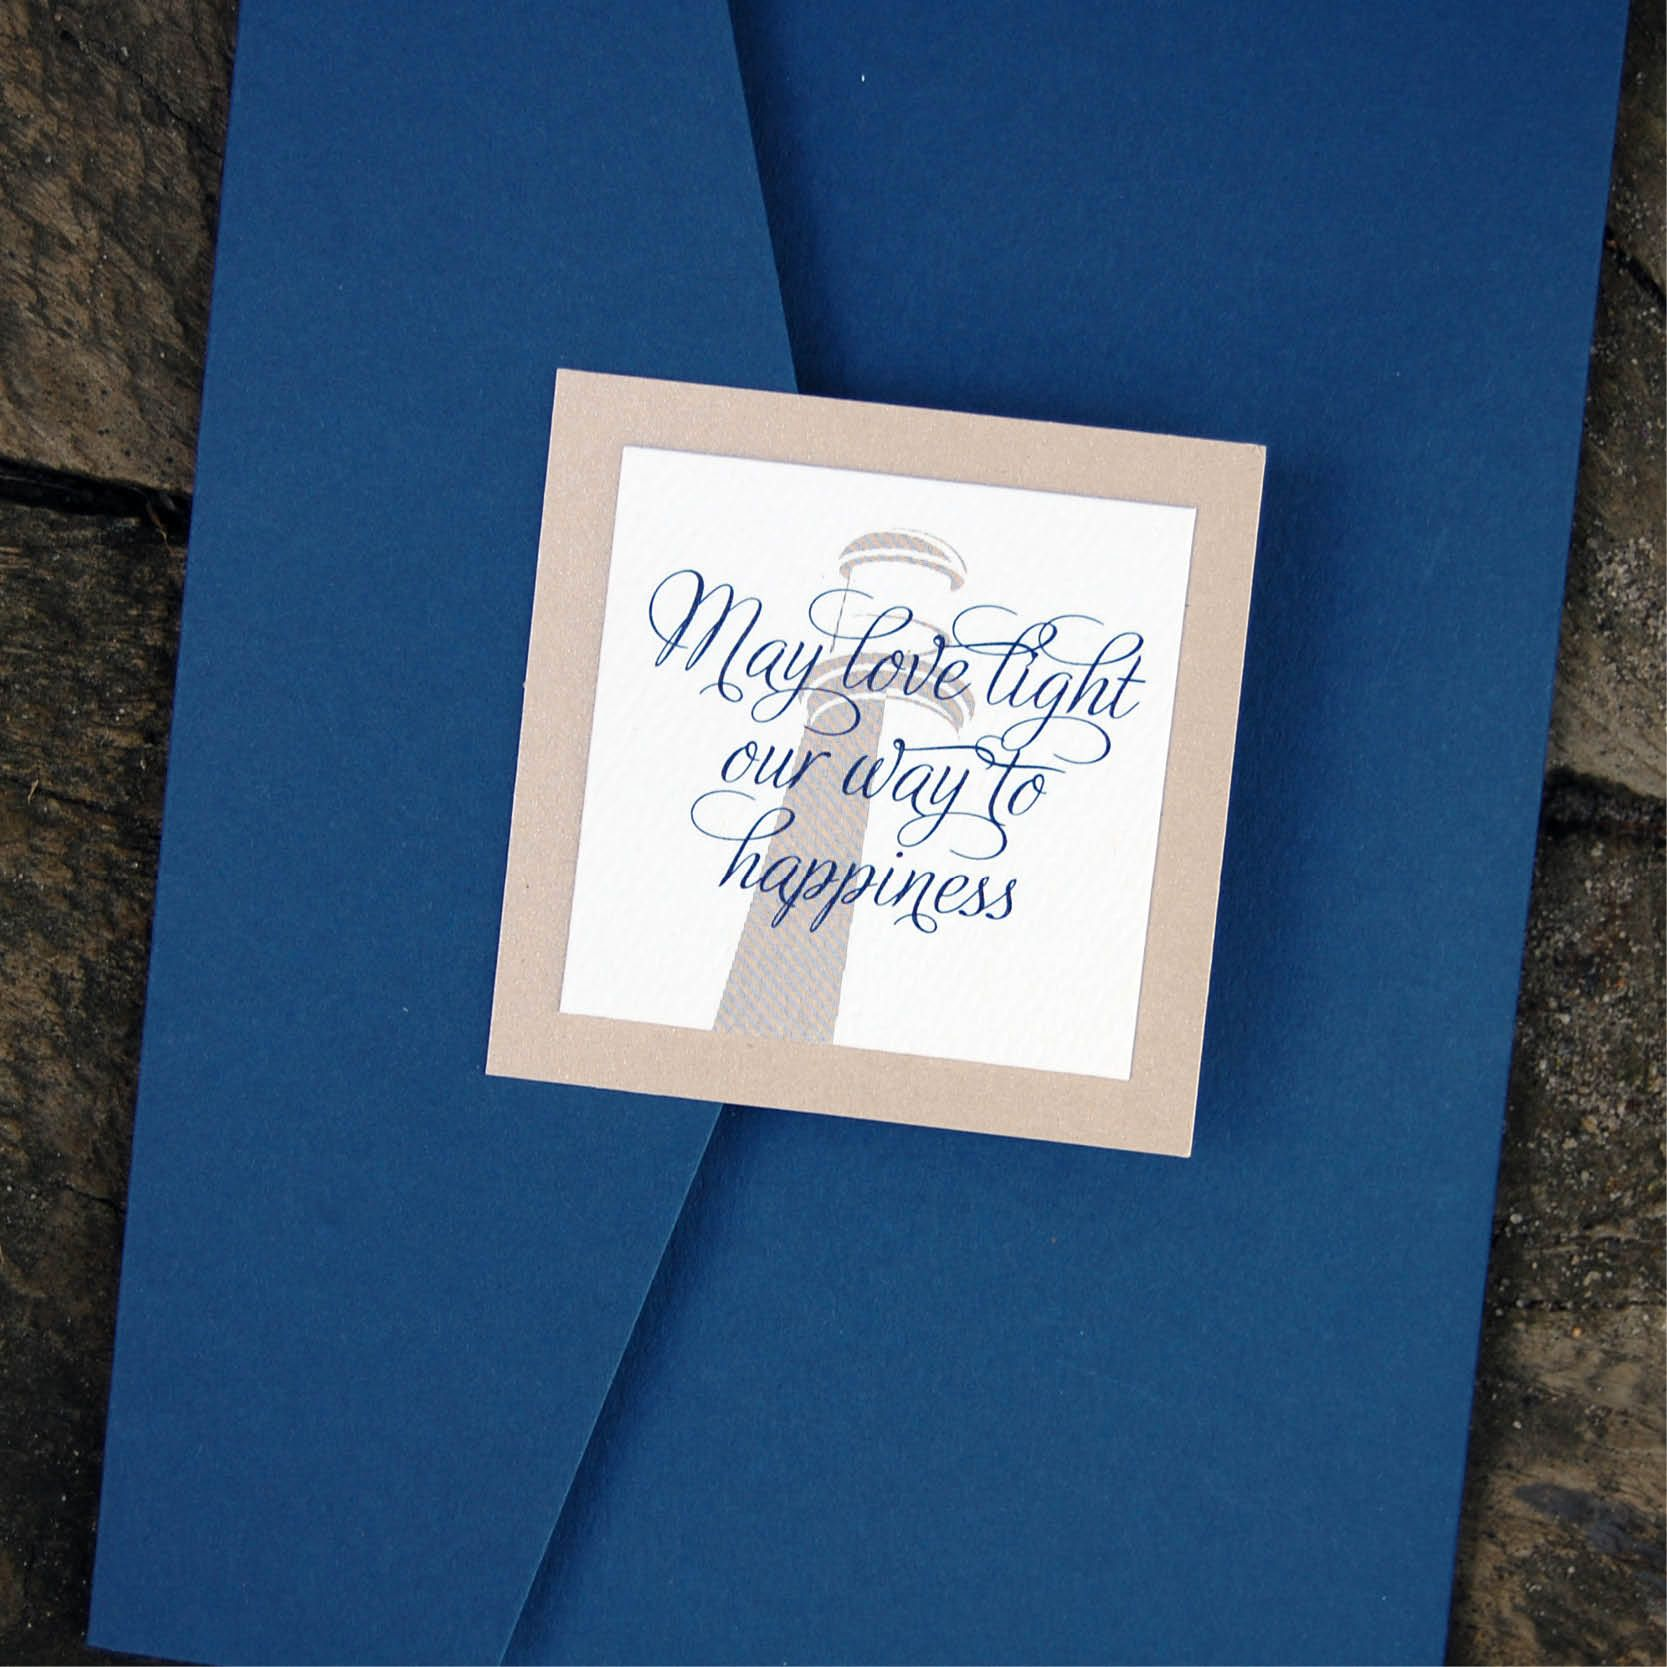 "Wedding Invitation Love Quotes May Love Light Our Way To Happiness"" Quote For Lighthouse Wedding"